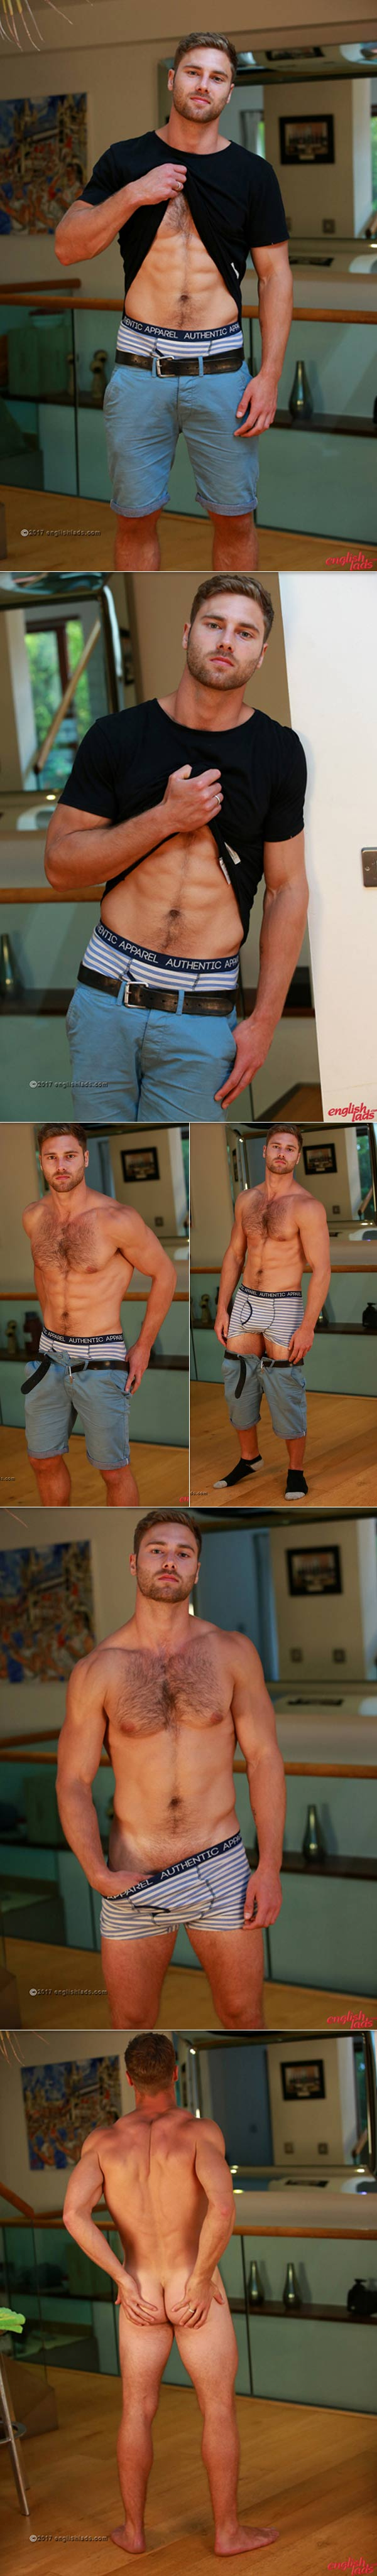 Tom Lawson (Straight Young Rugby Hunk) at EnglishLads